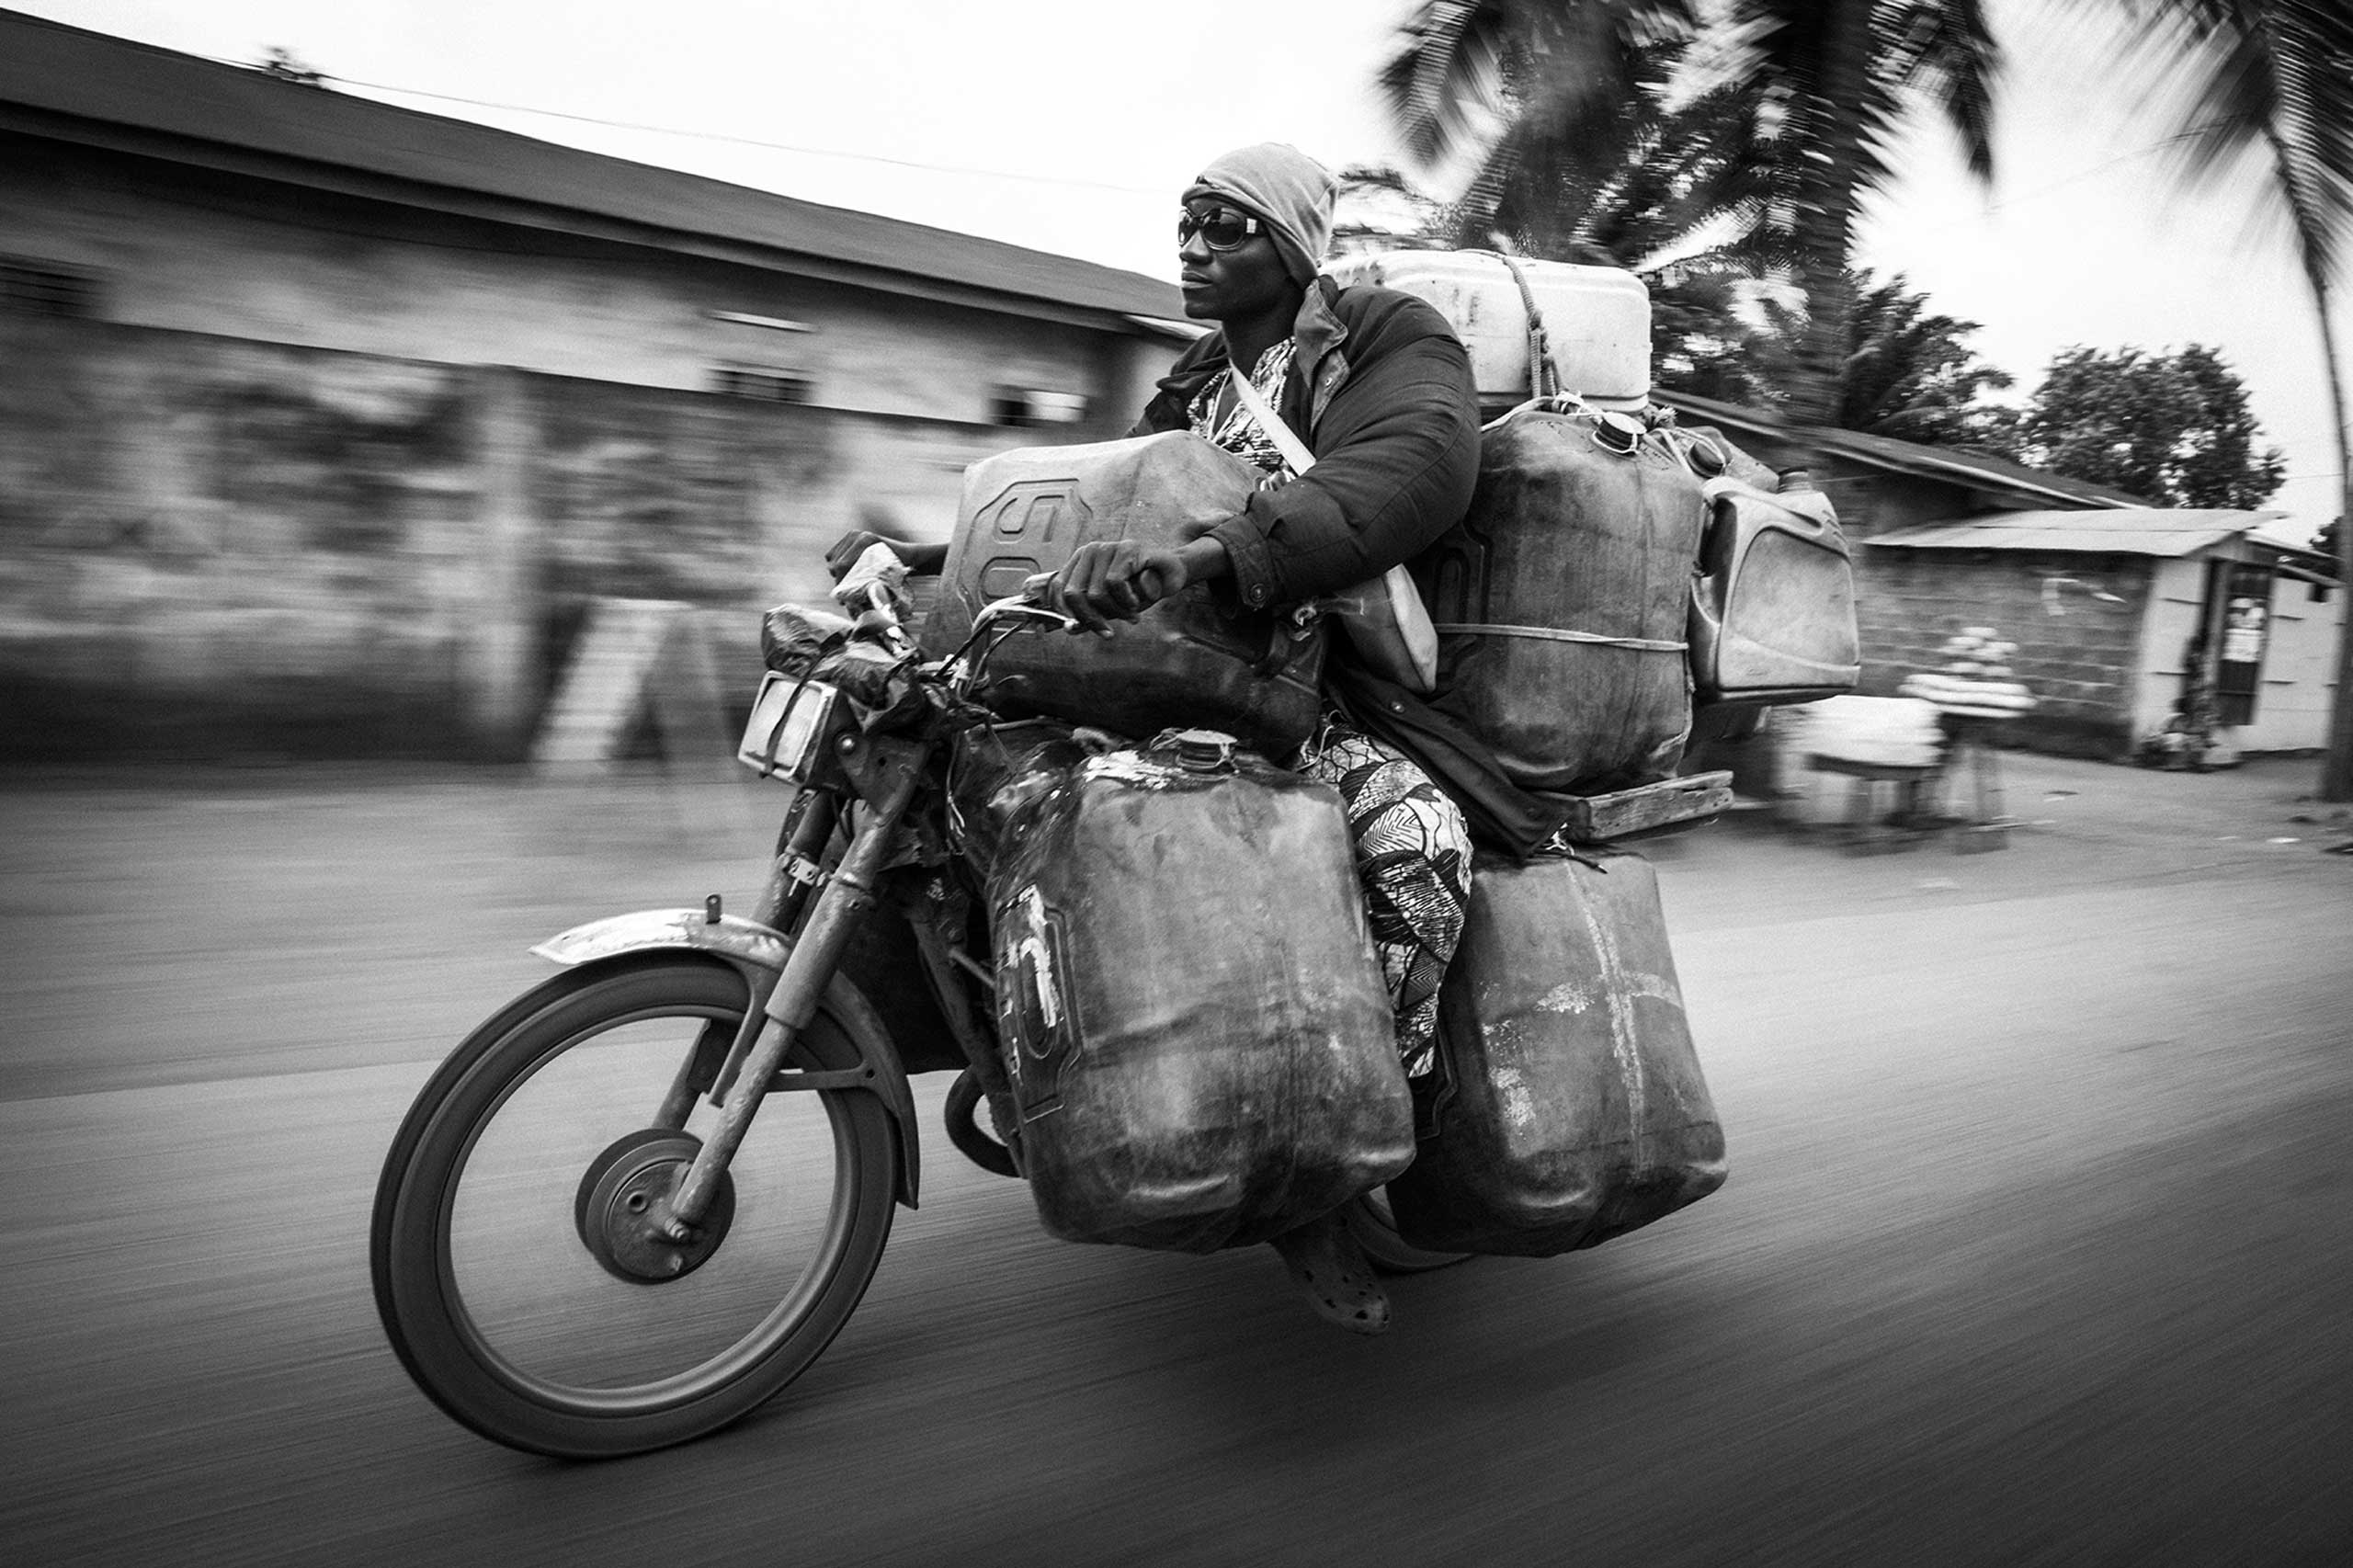 The 100cc motorbike is favored method of transport in the county.